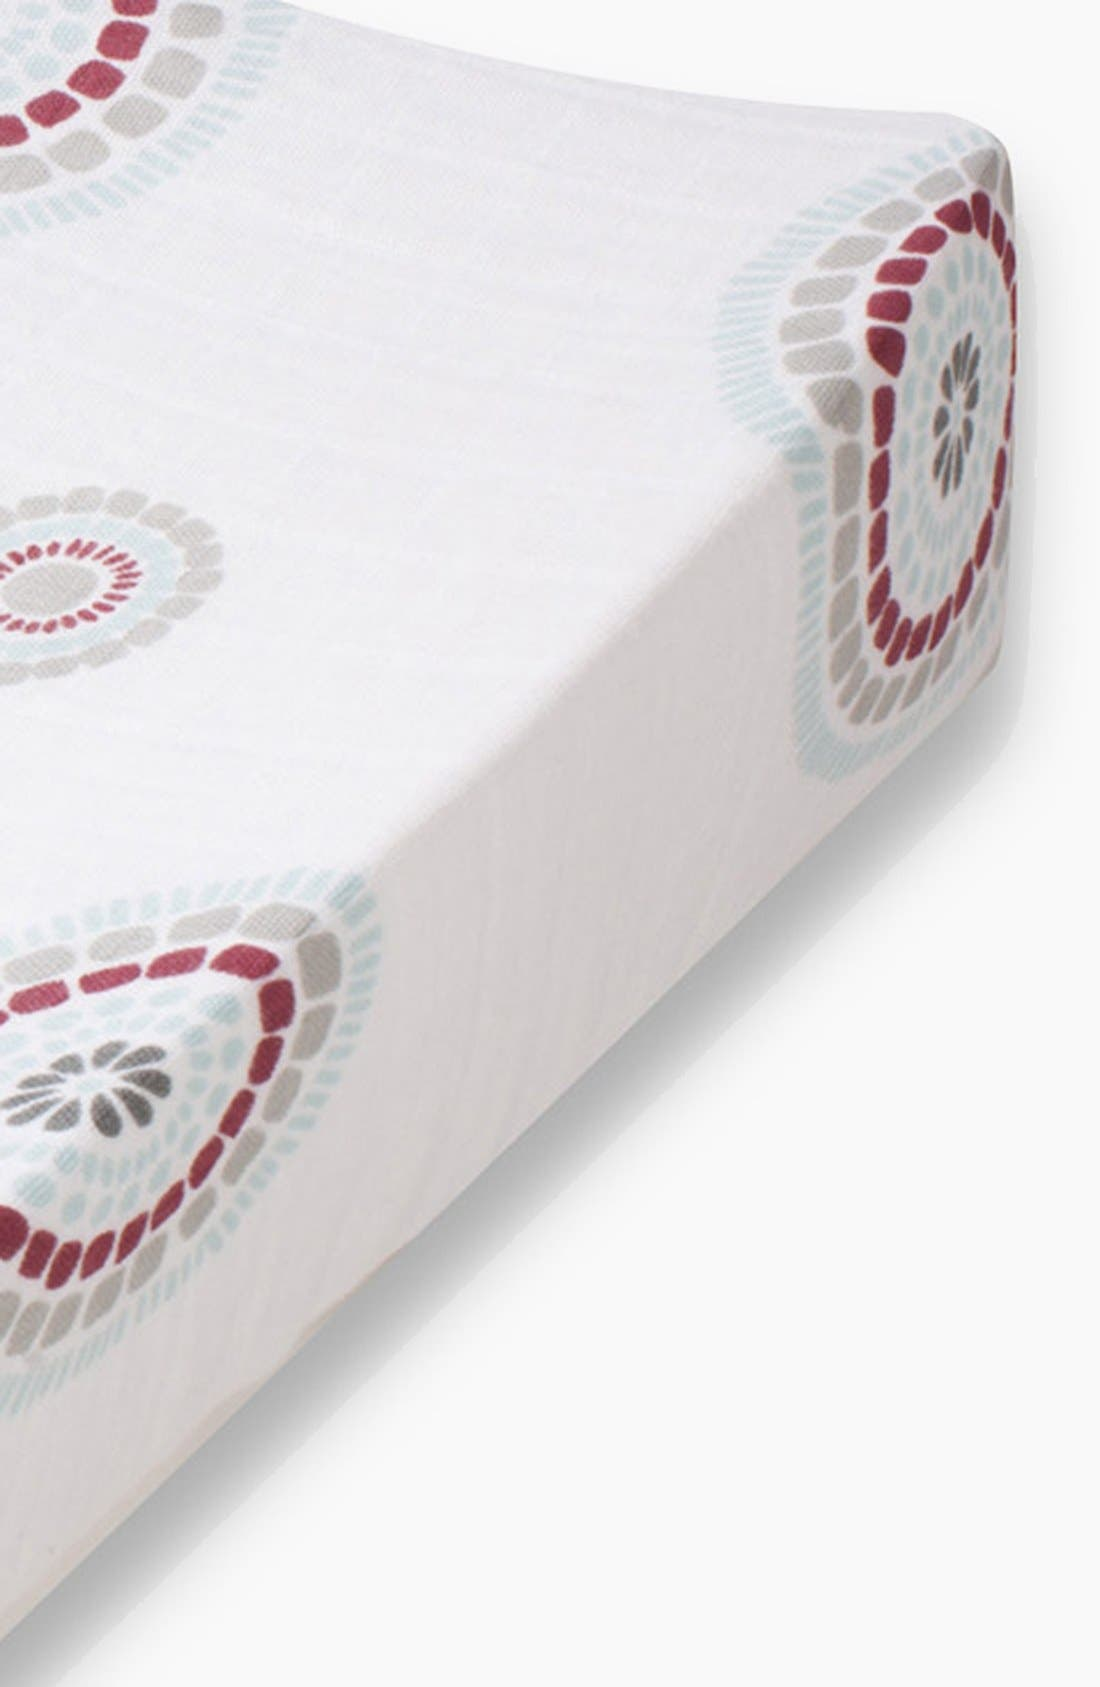 Main Image - aden + anais Classic Changing Pad Cover